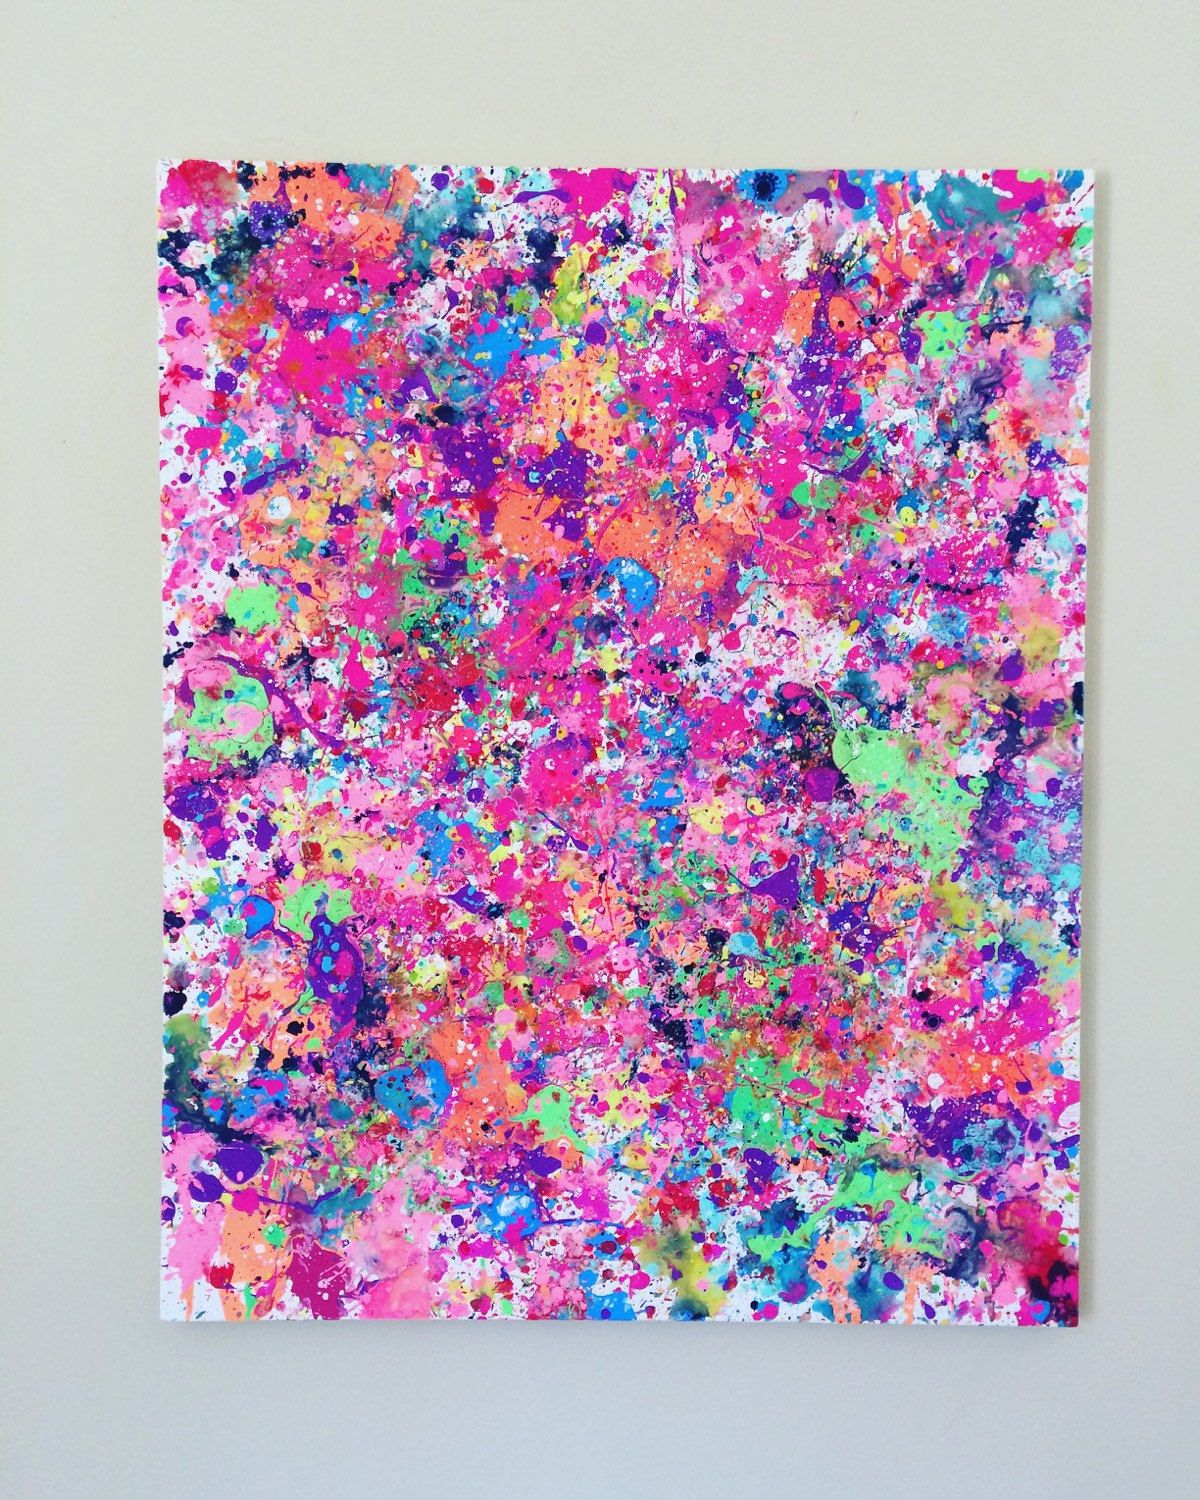 Abstract Pink Art Neon Painting Pink Splatter Art Original Pink Art Pink Large Painting Acrylic Canvas Splatter Art Paint Splatter Art Flower Painting Original